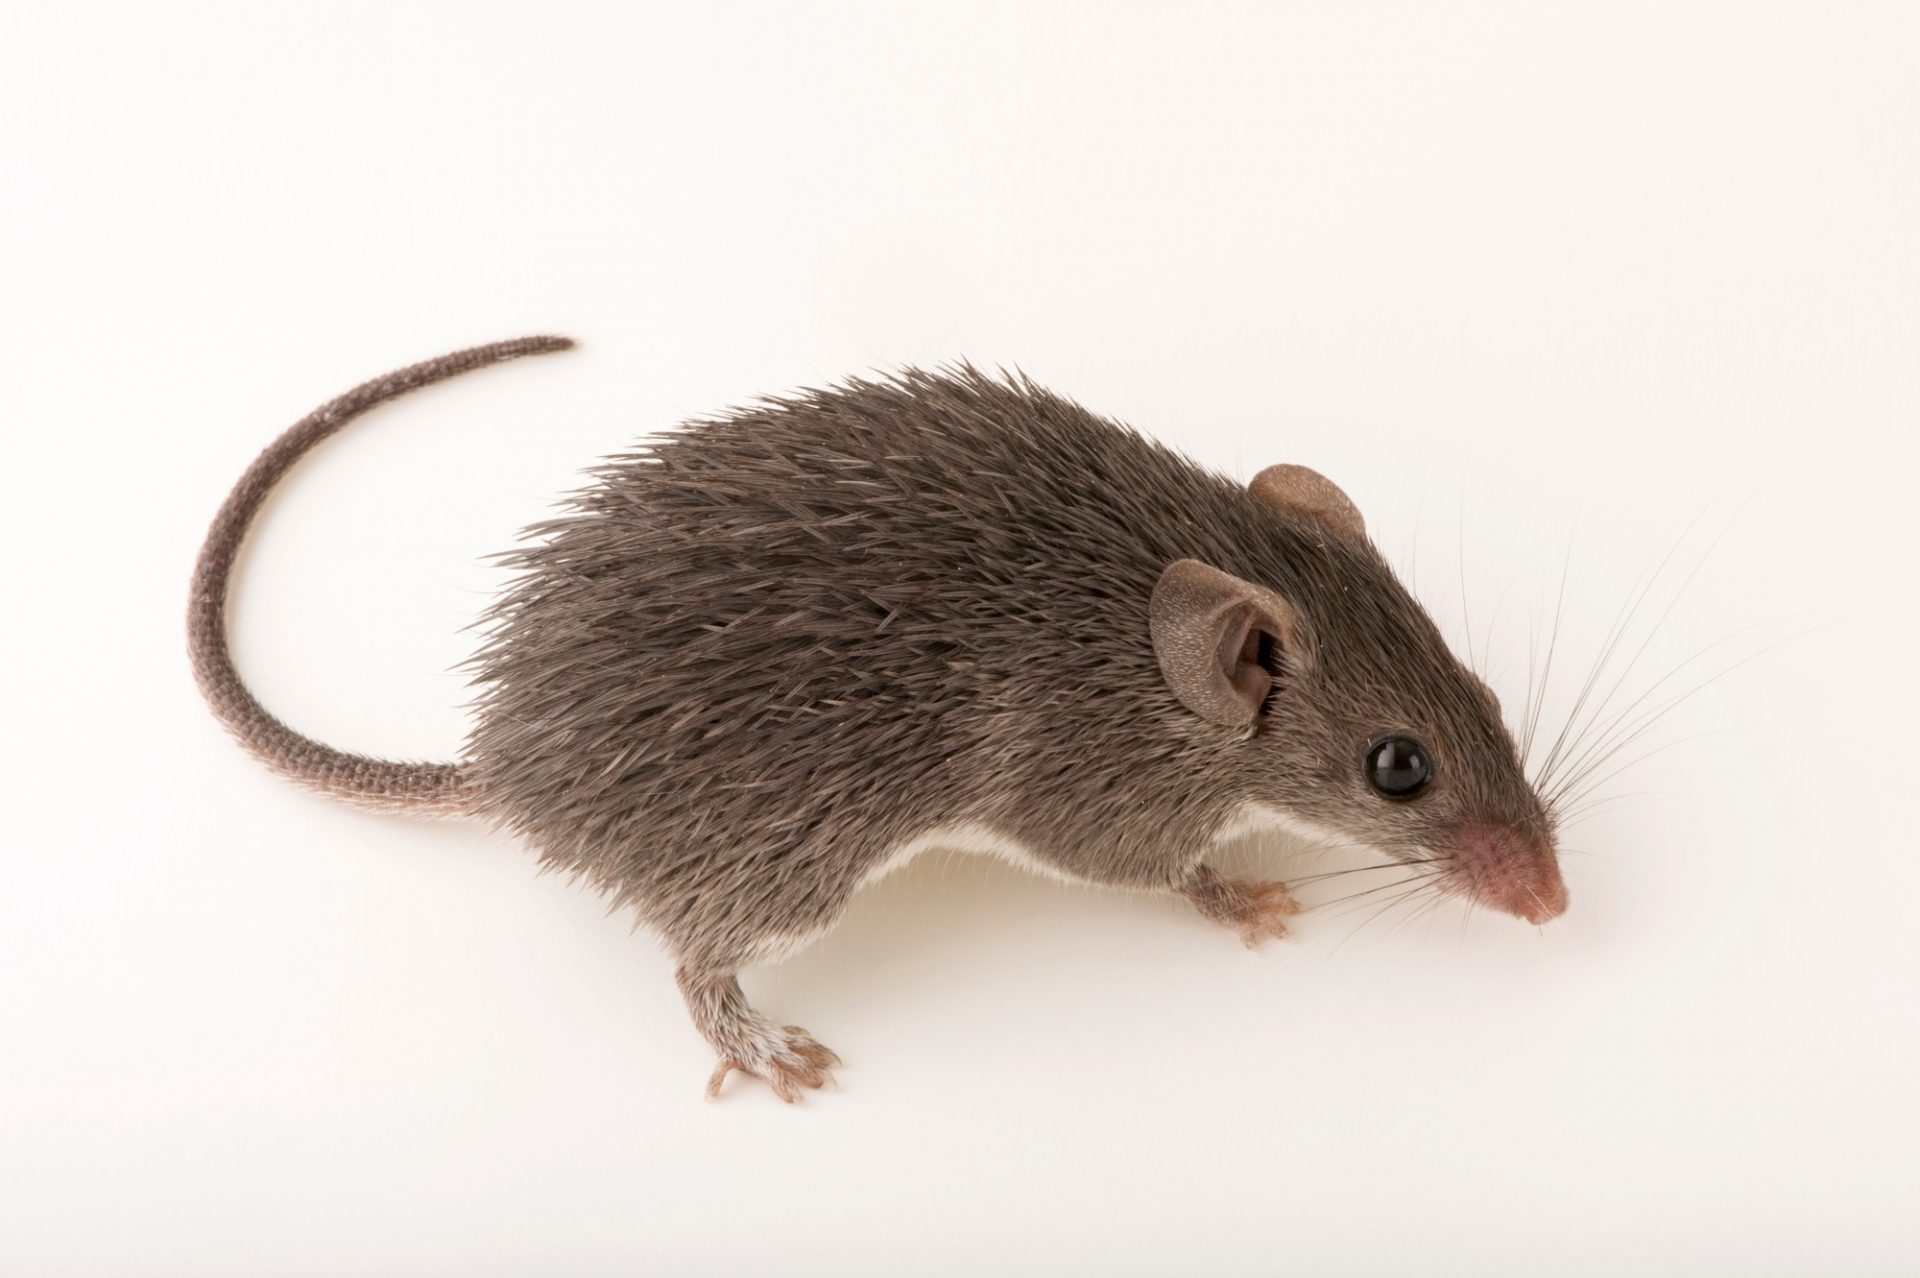 Photo: A Percival's spiny mouse (Acomys percivali) at the Plzen Zoo.